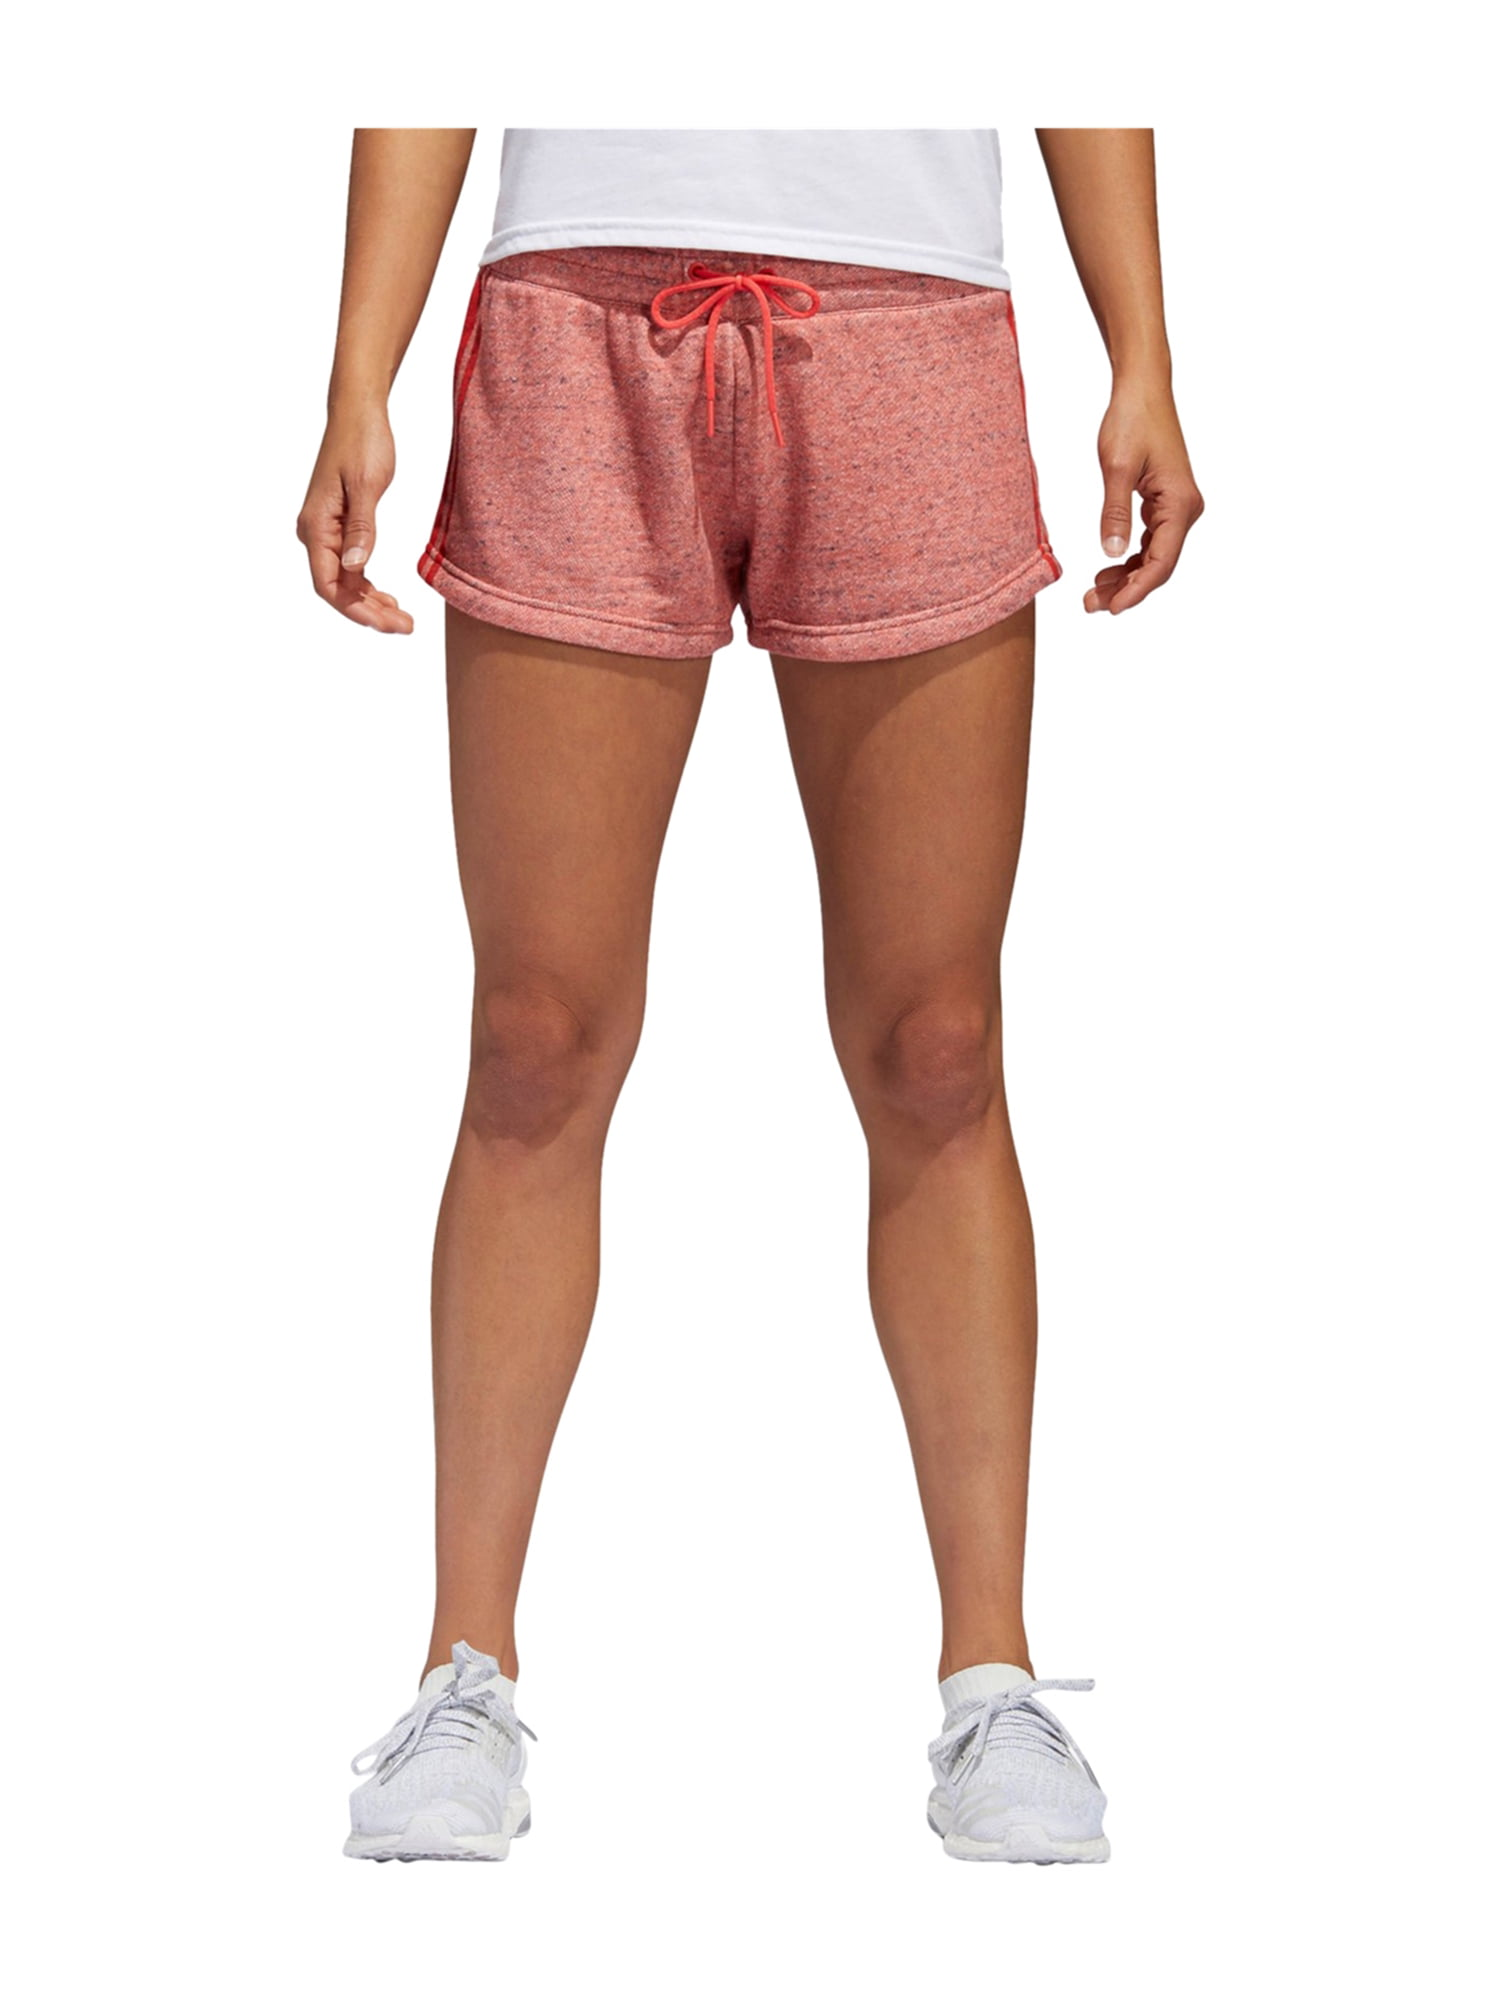 bc480611e515 Adidas Womens Sport2Stree Athletic Workout Shorts realco 2XL